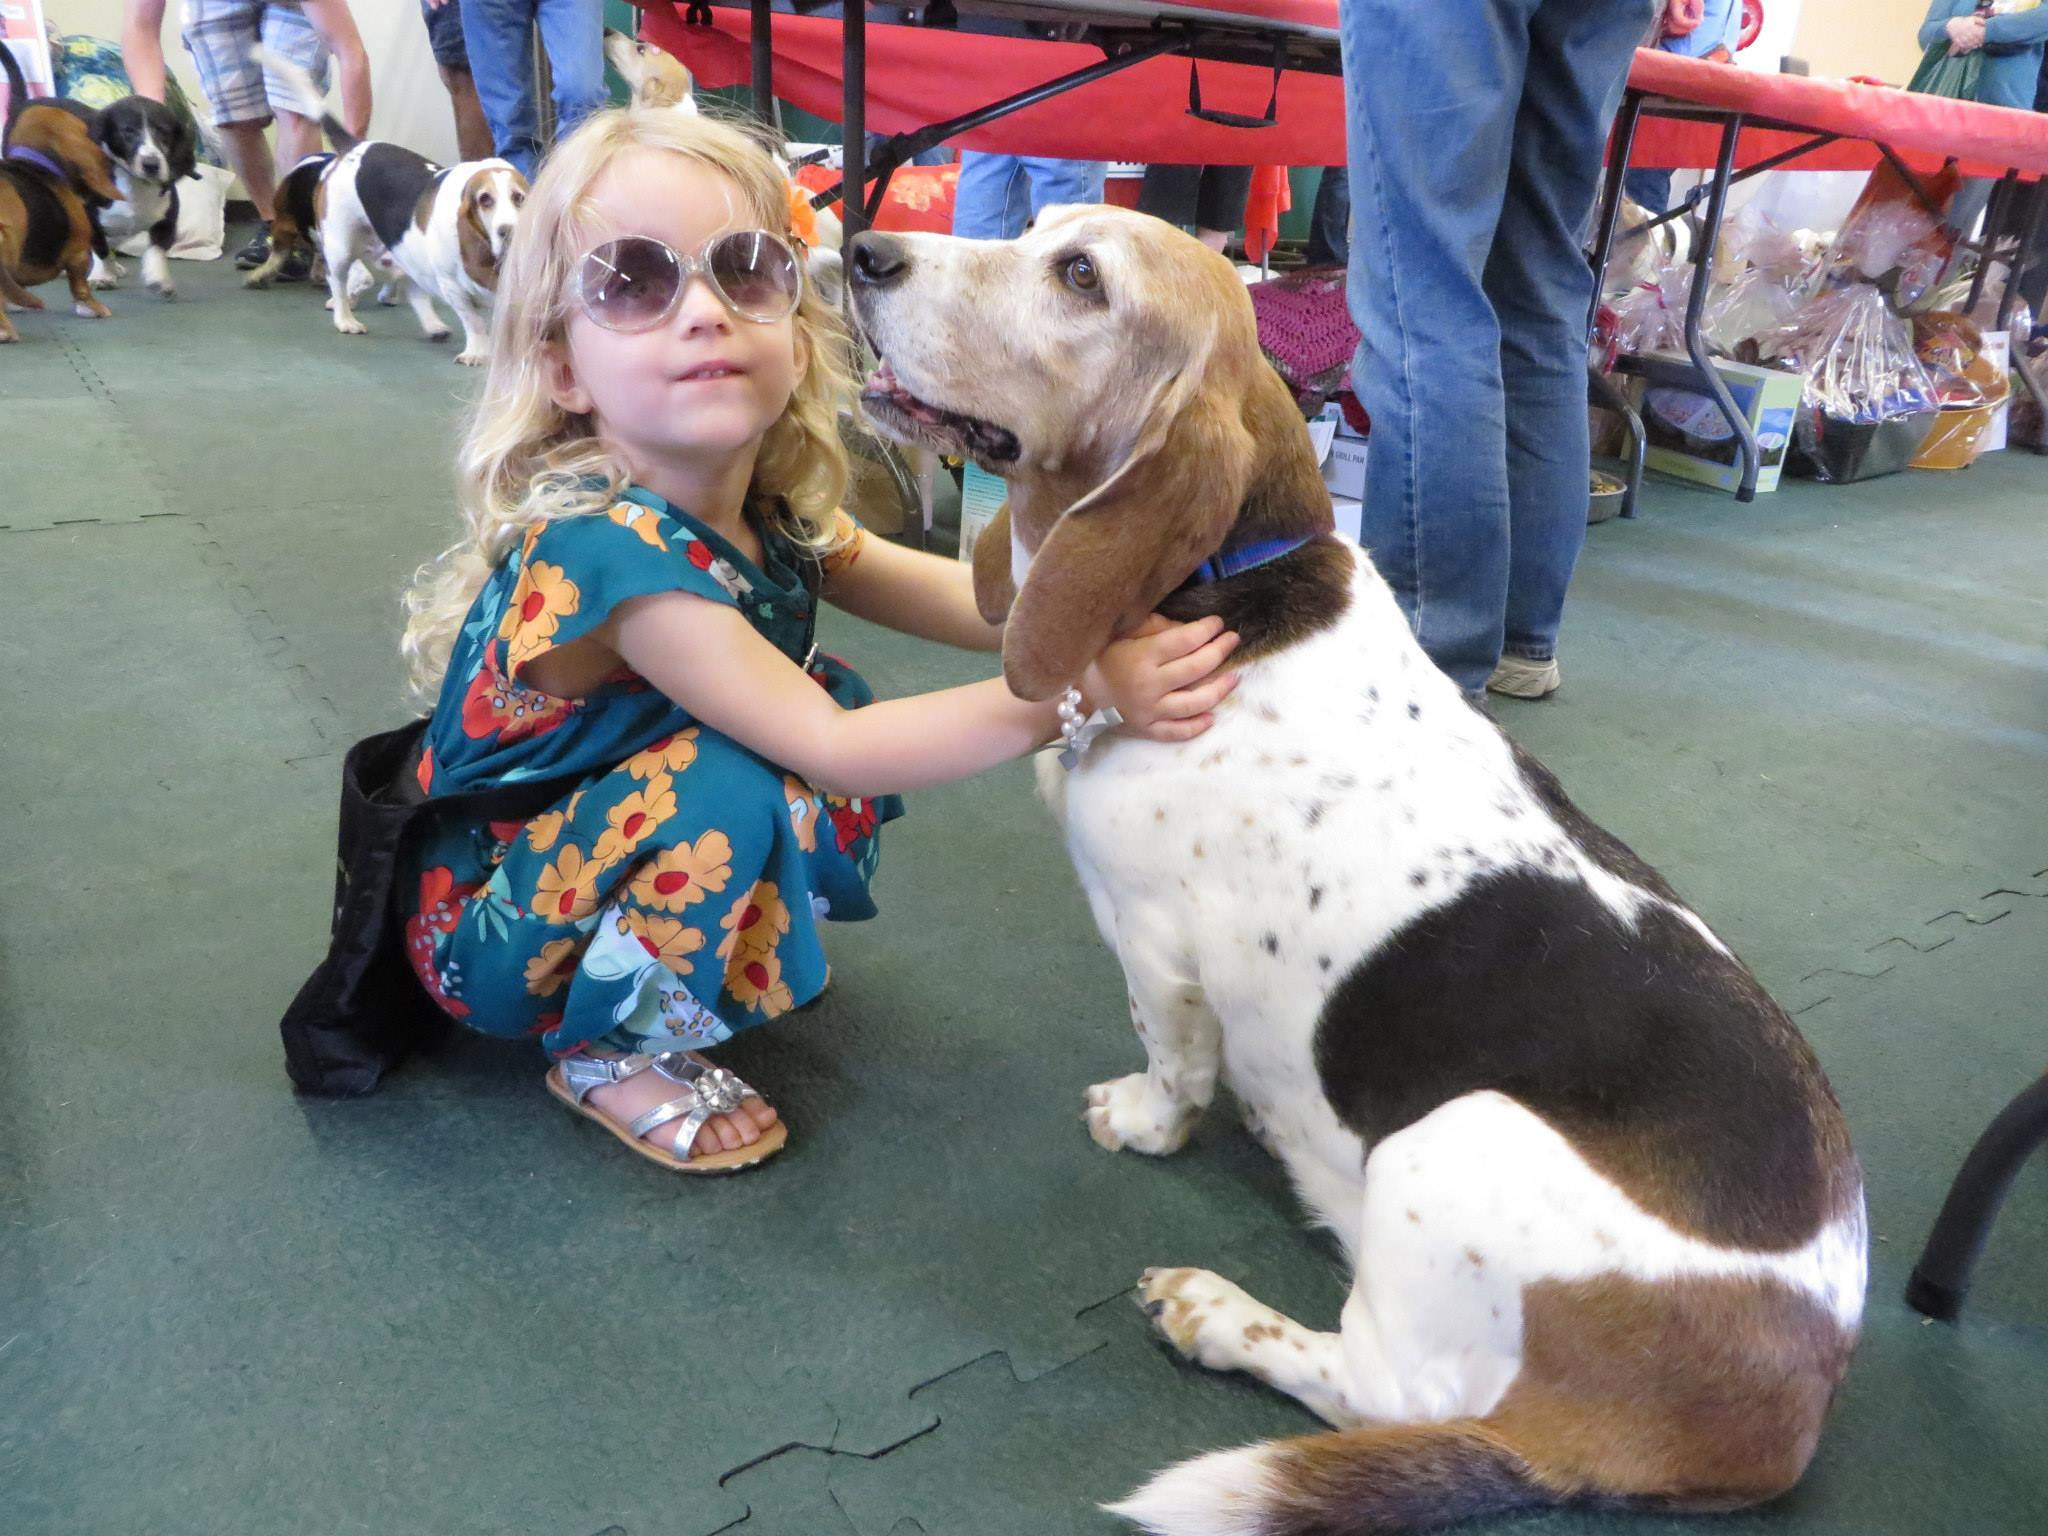 Basset Hounds make good family pets